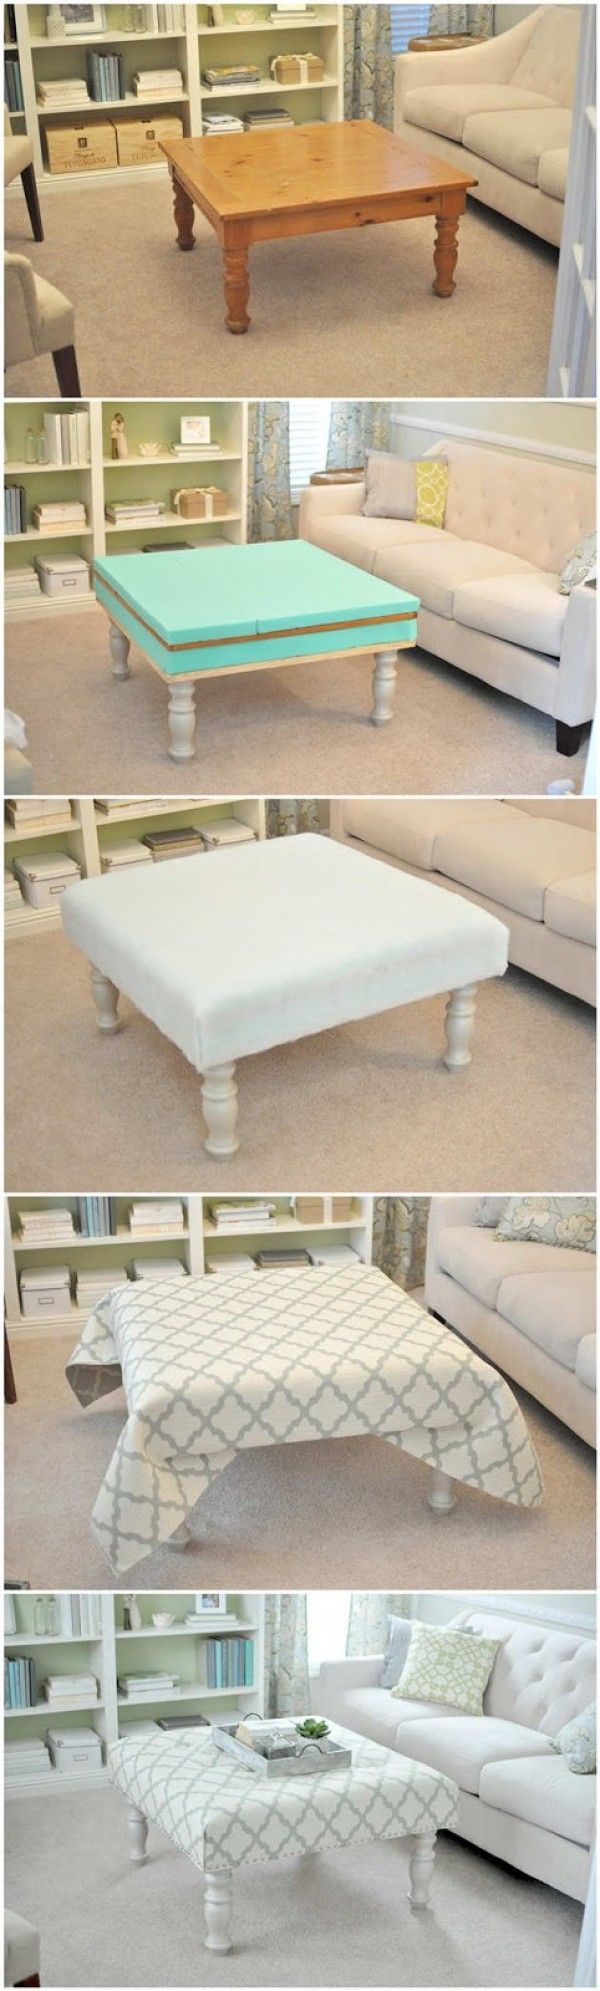 Best 25 build a coffee table ideas on pinterest diy wood table 15 easy diy ottoman ideas you can make on a budget coffee table geotapseo Image collections